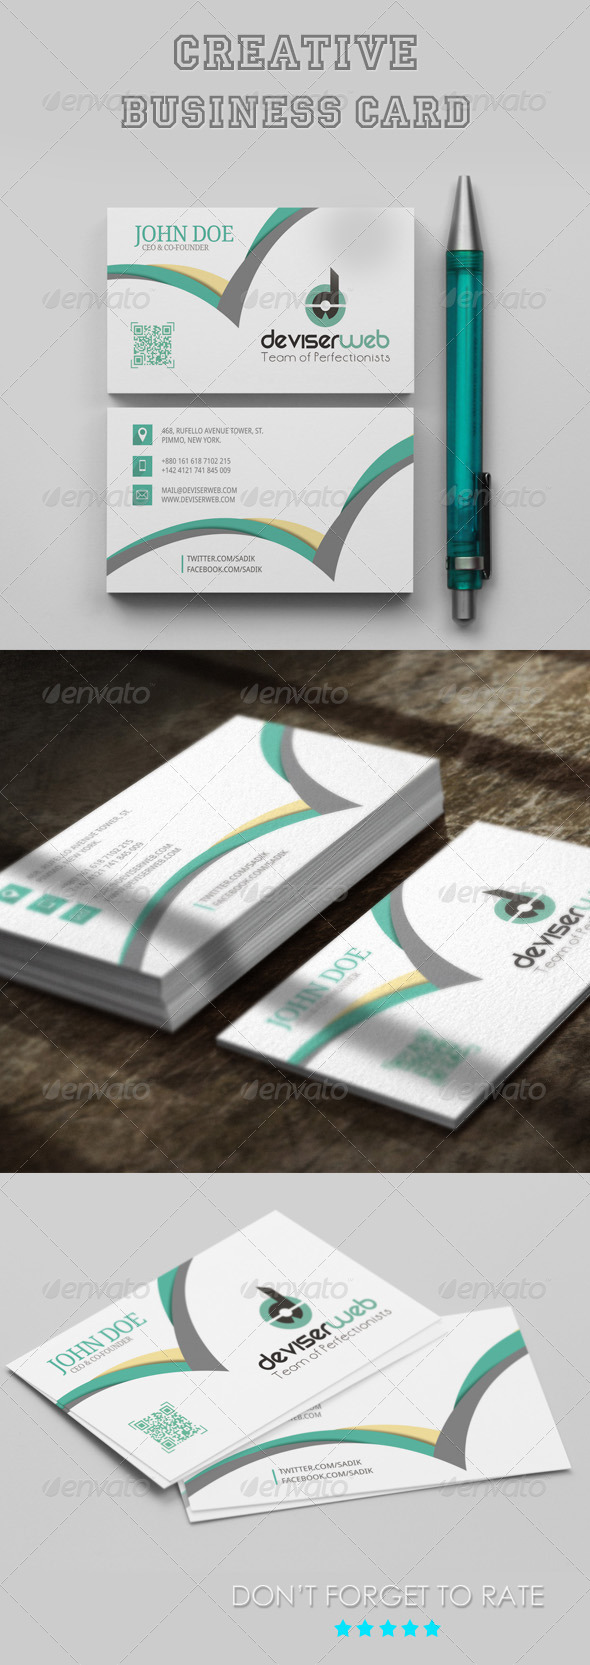 GraphicRiver Creative Business Card Template 8075103